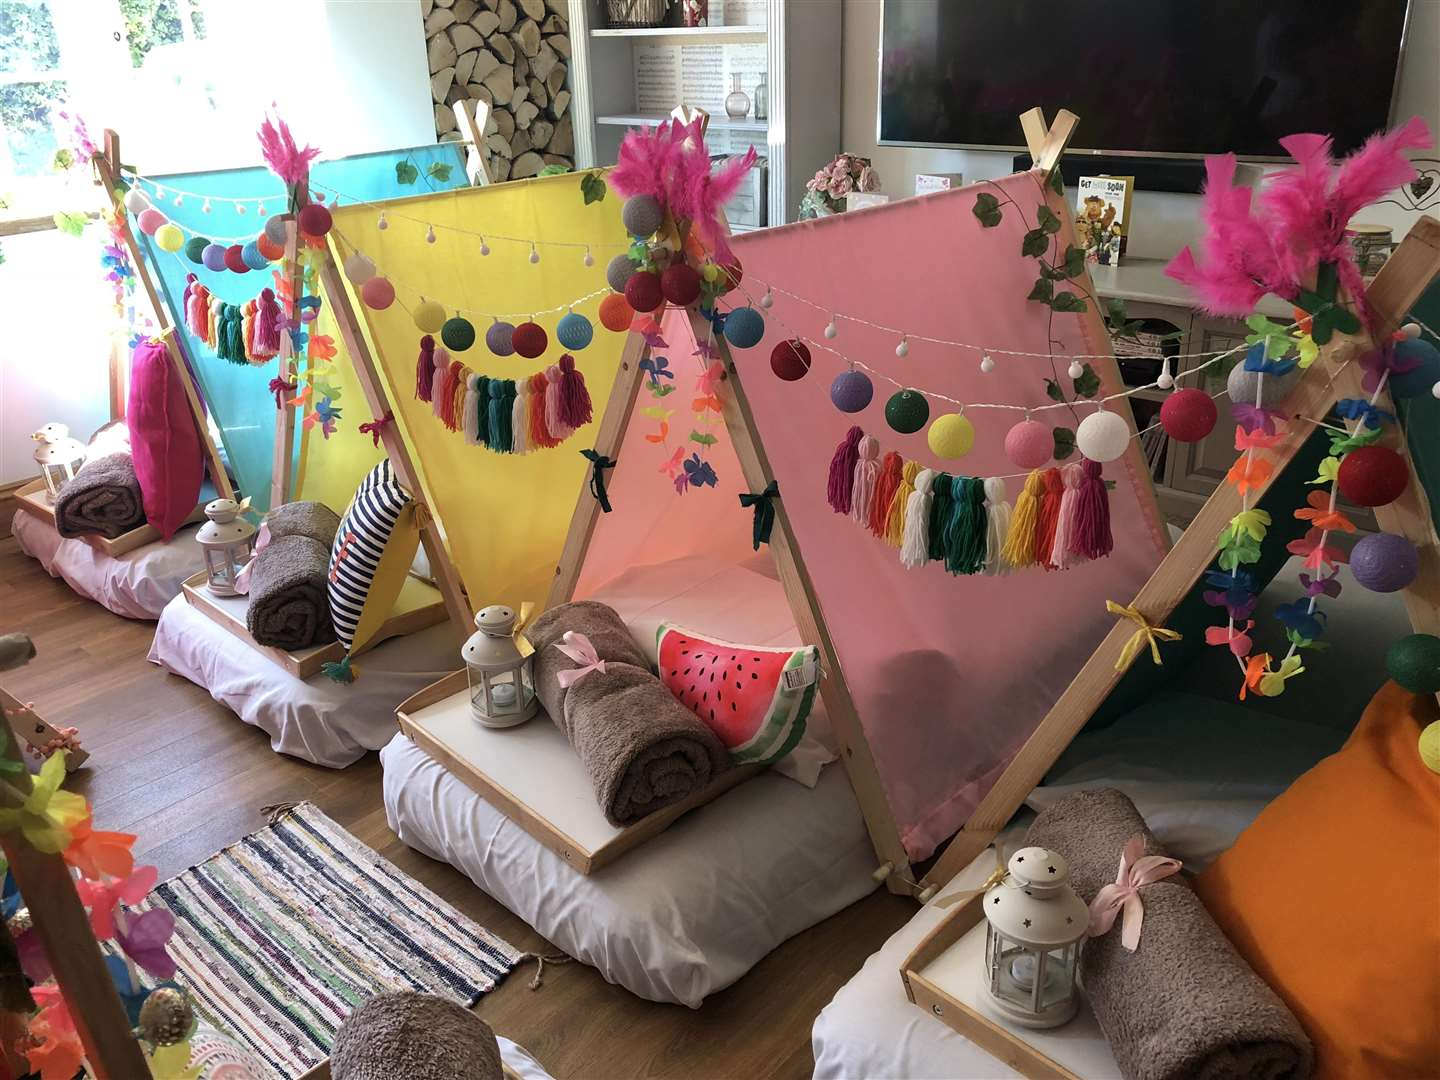 Magical Slumber Parties cater for children from six years old up to adults